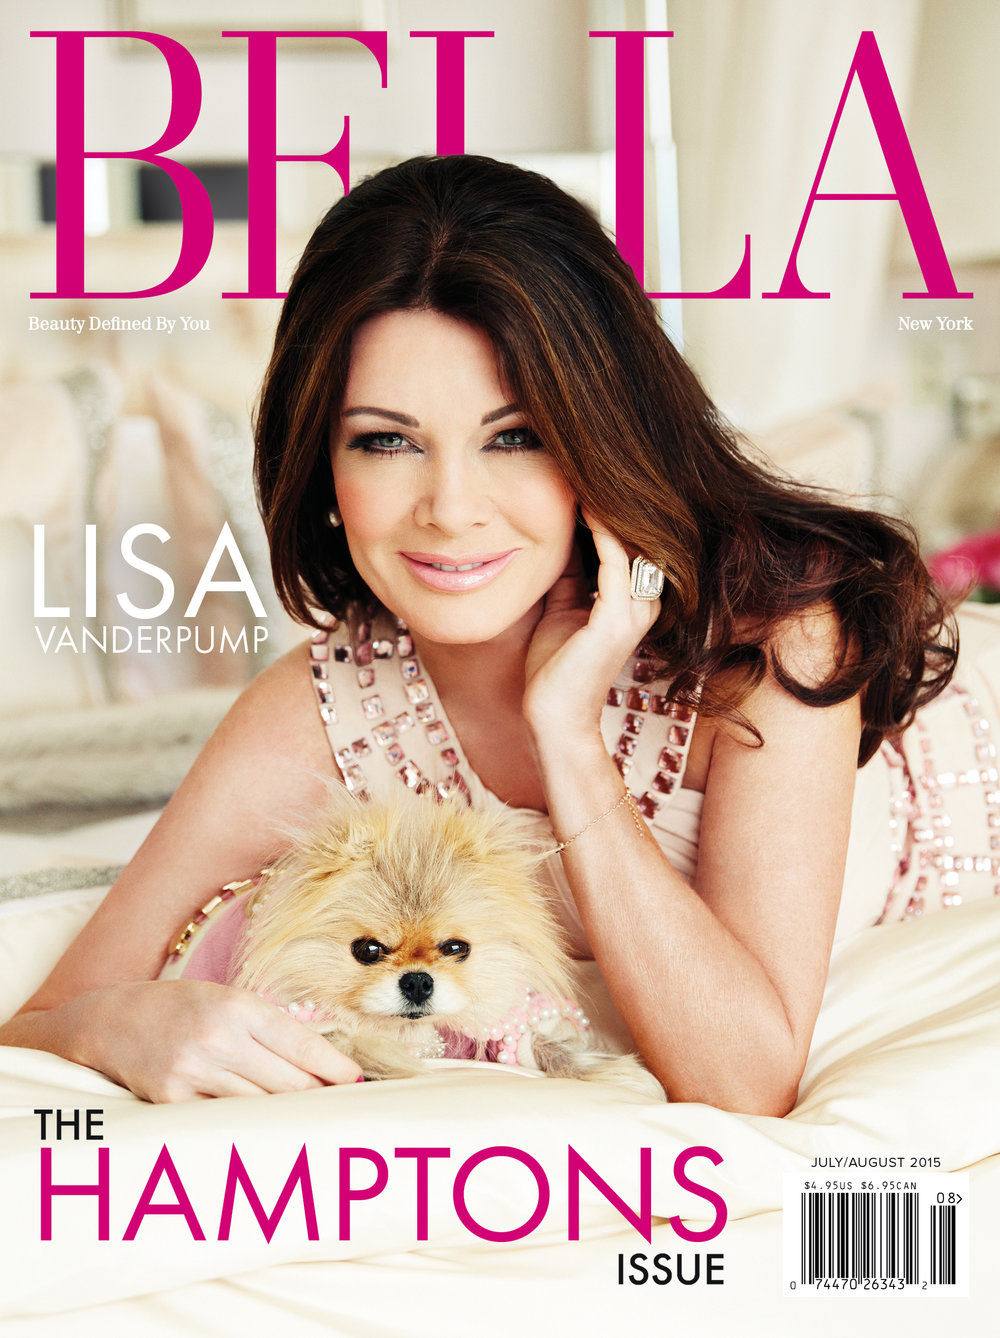 Lisa Vanderpump for Bella NYC Magazine, July/August 2015